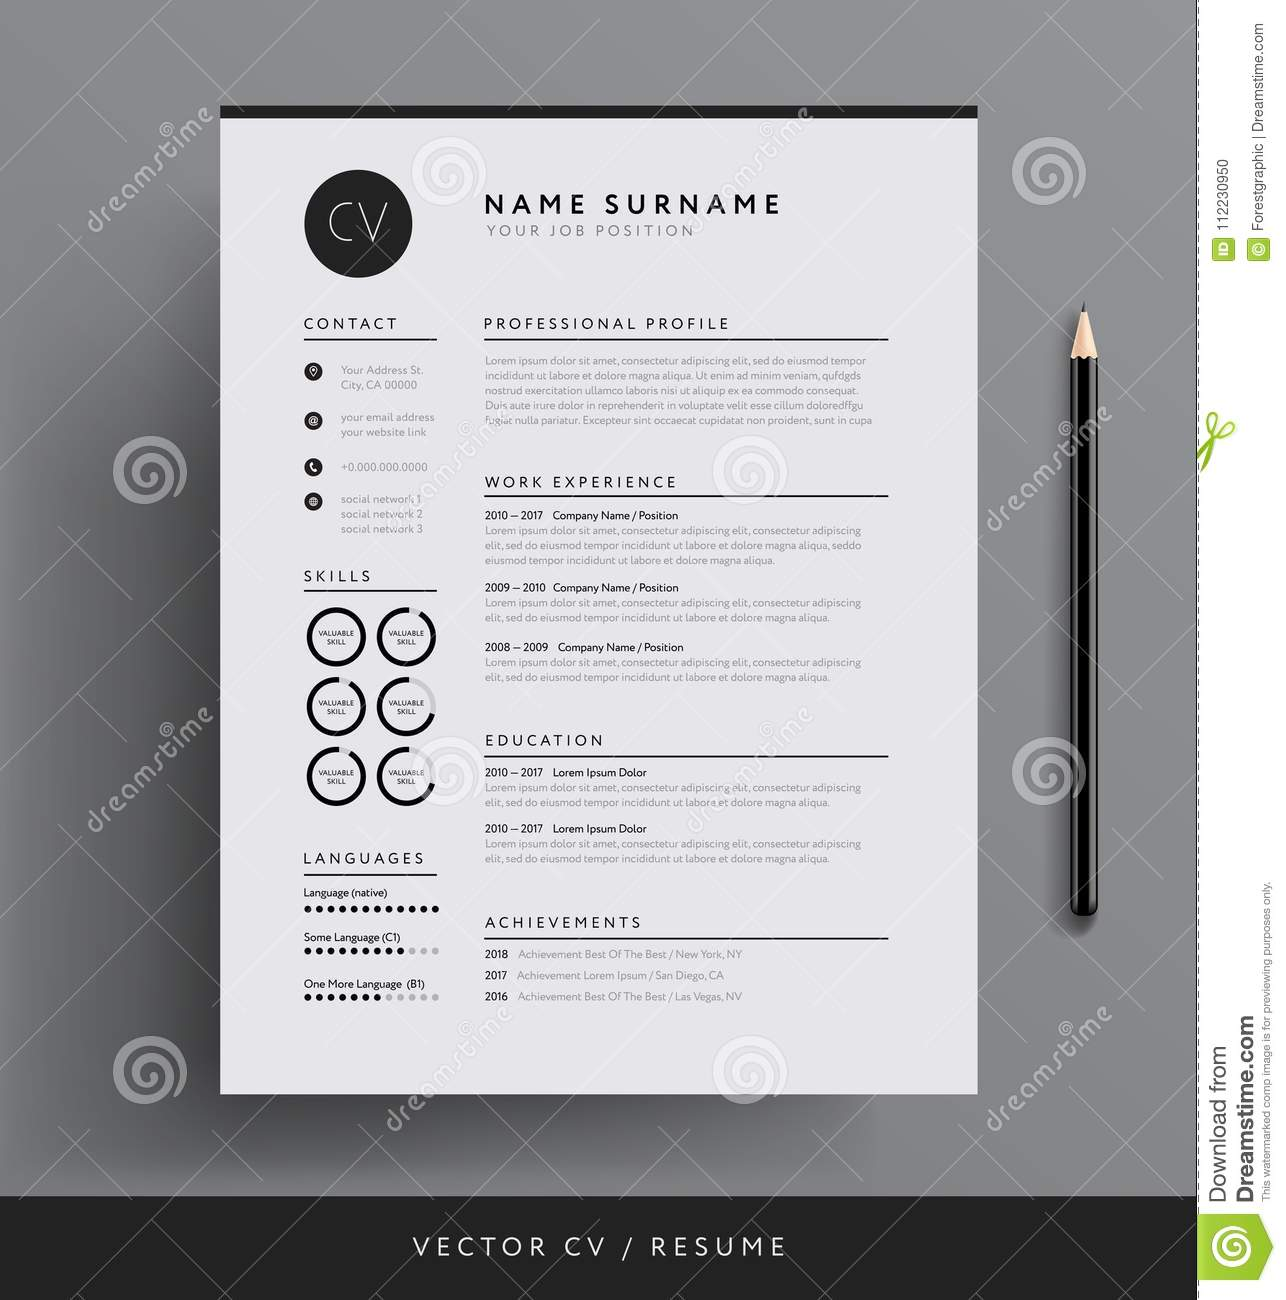 Professional Cv Resume Template Design For A Creative Person V